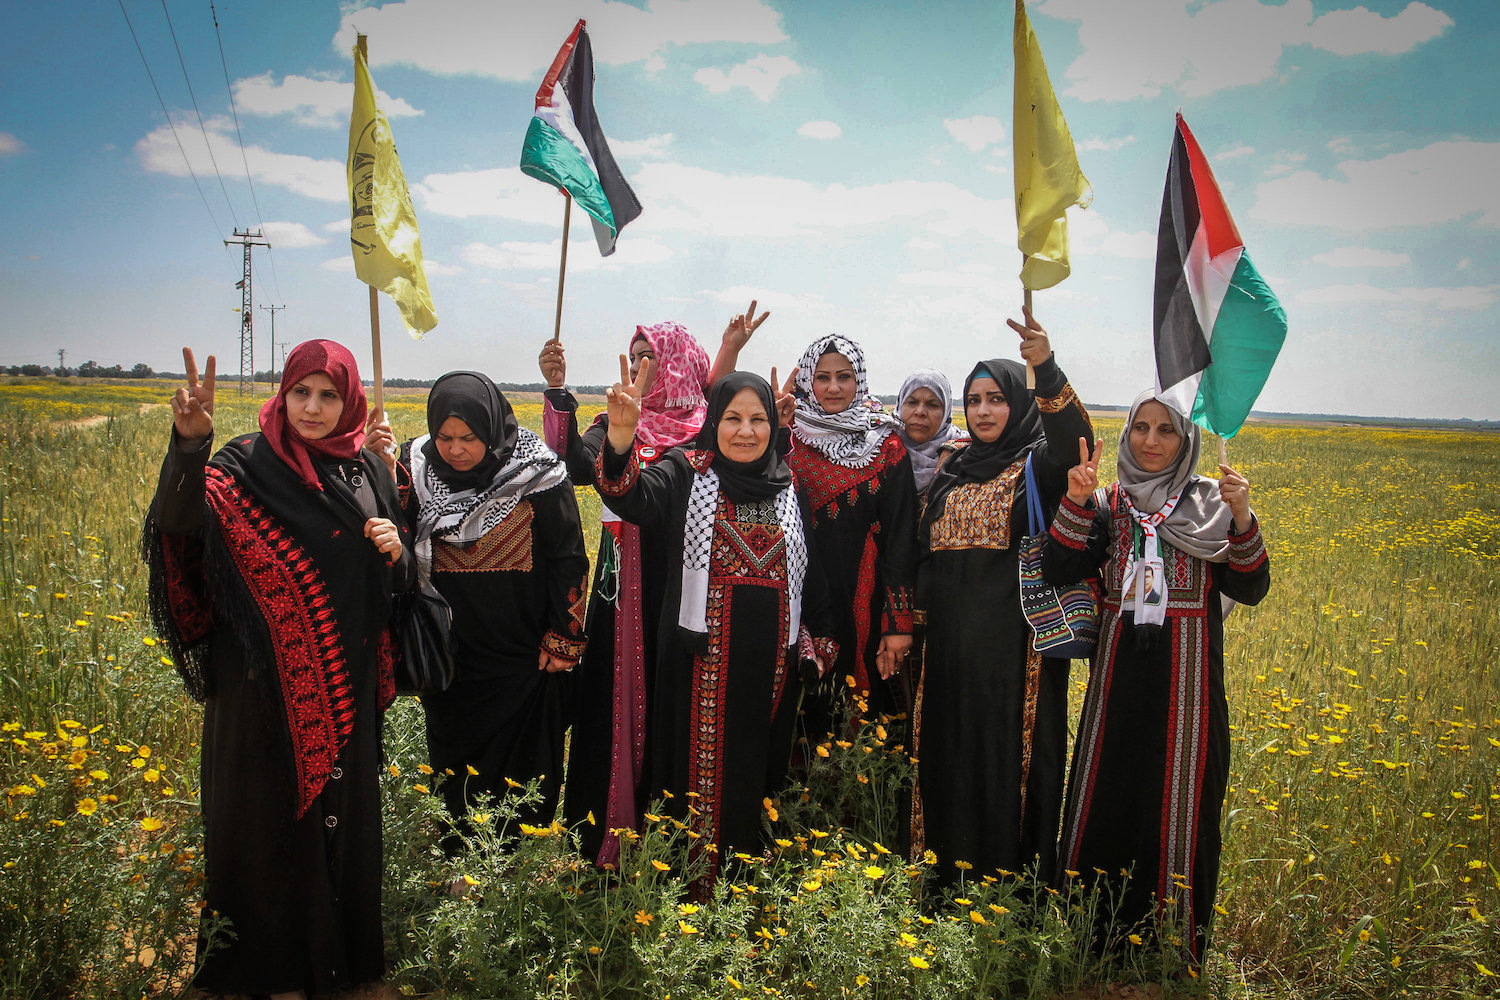 Palestinians take part in a demonstration on the anniversary of Land Day, near Khan Younis in the southern Gaza Strip, on March 30, 2016. (Abed Rahim Khatib/ Flash90)